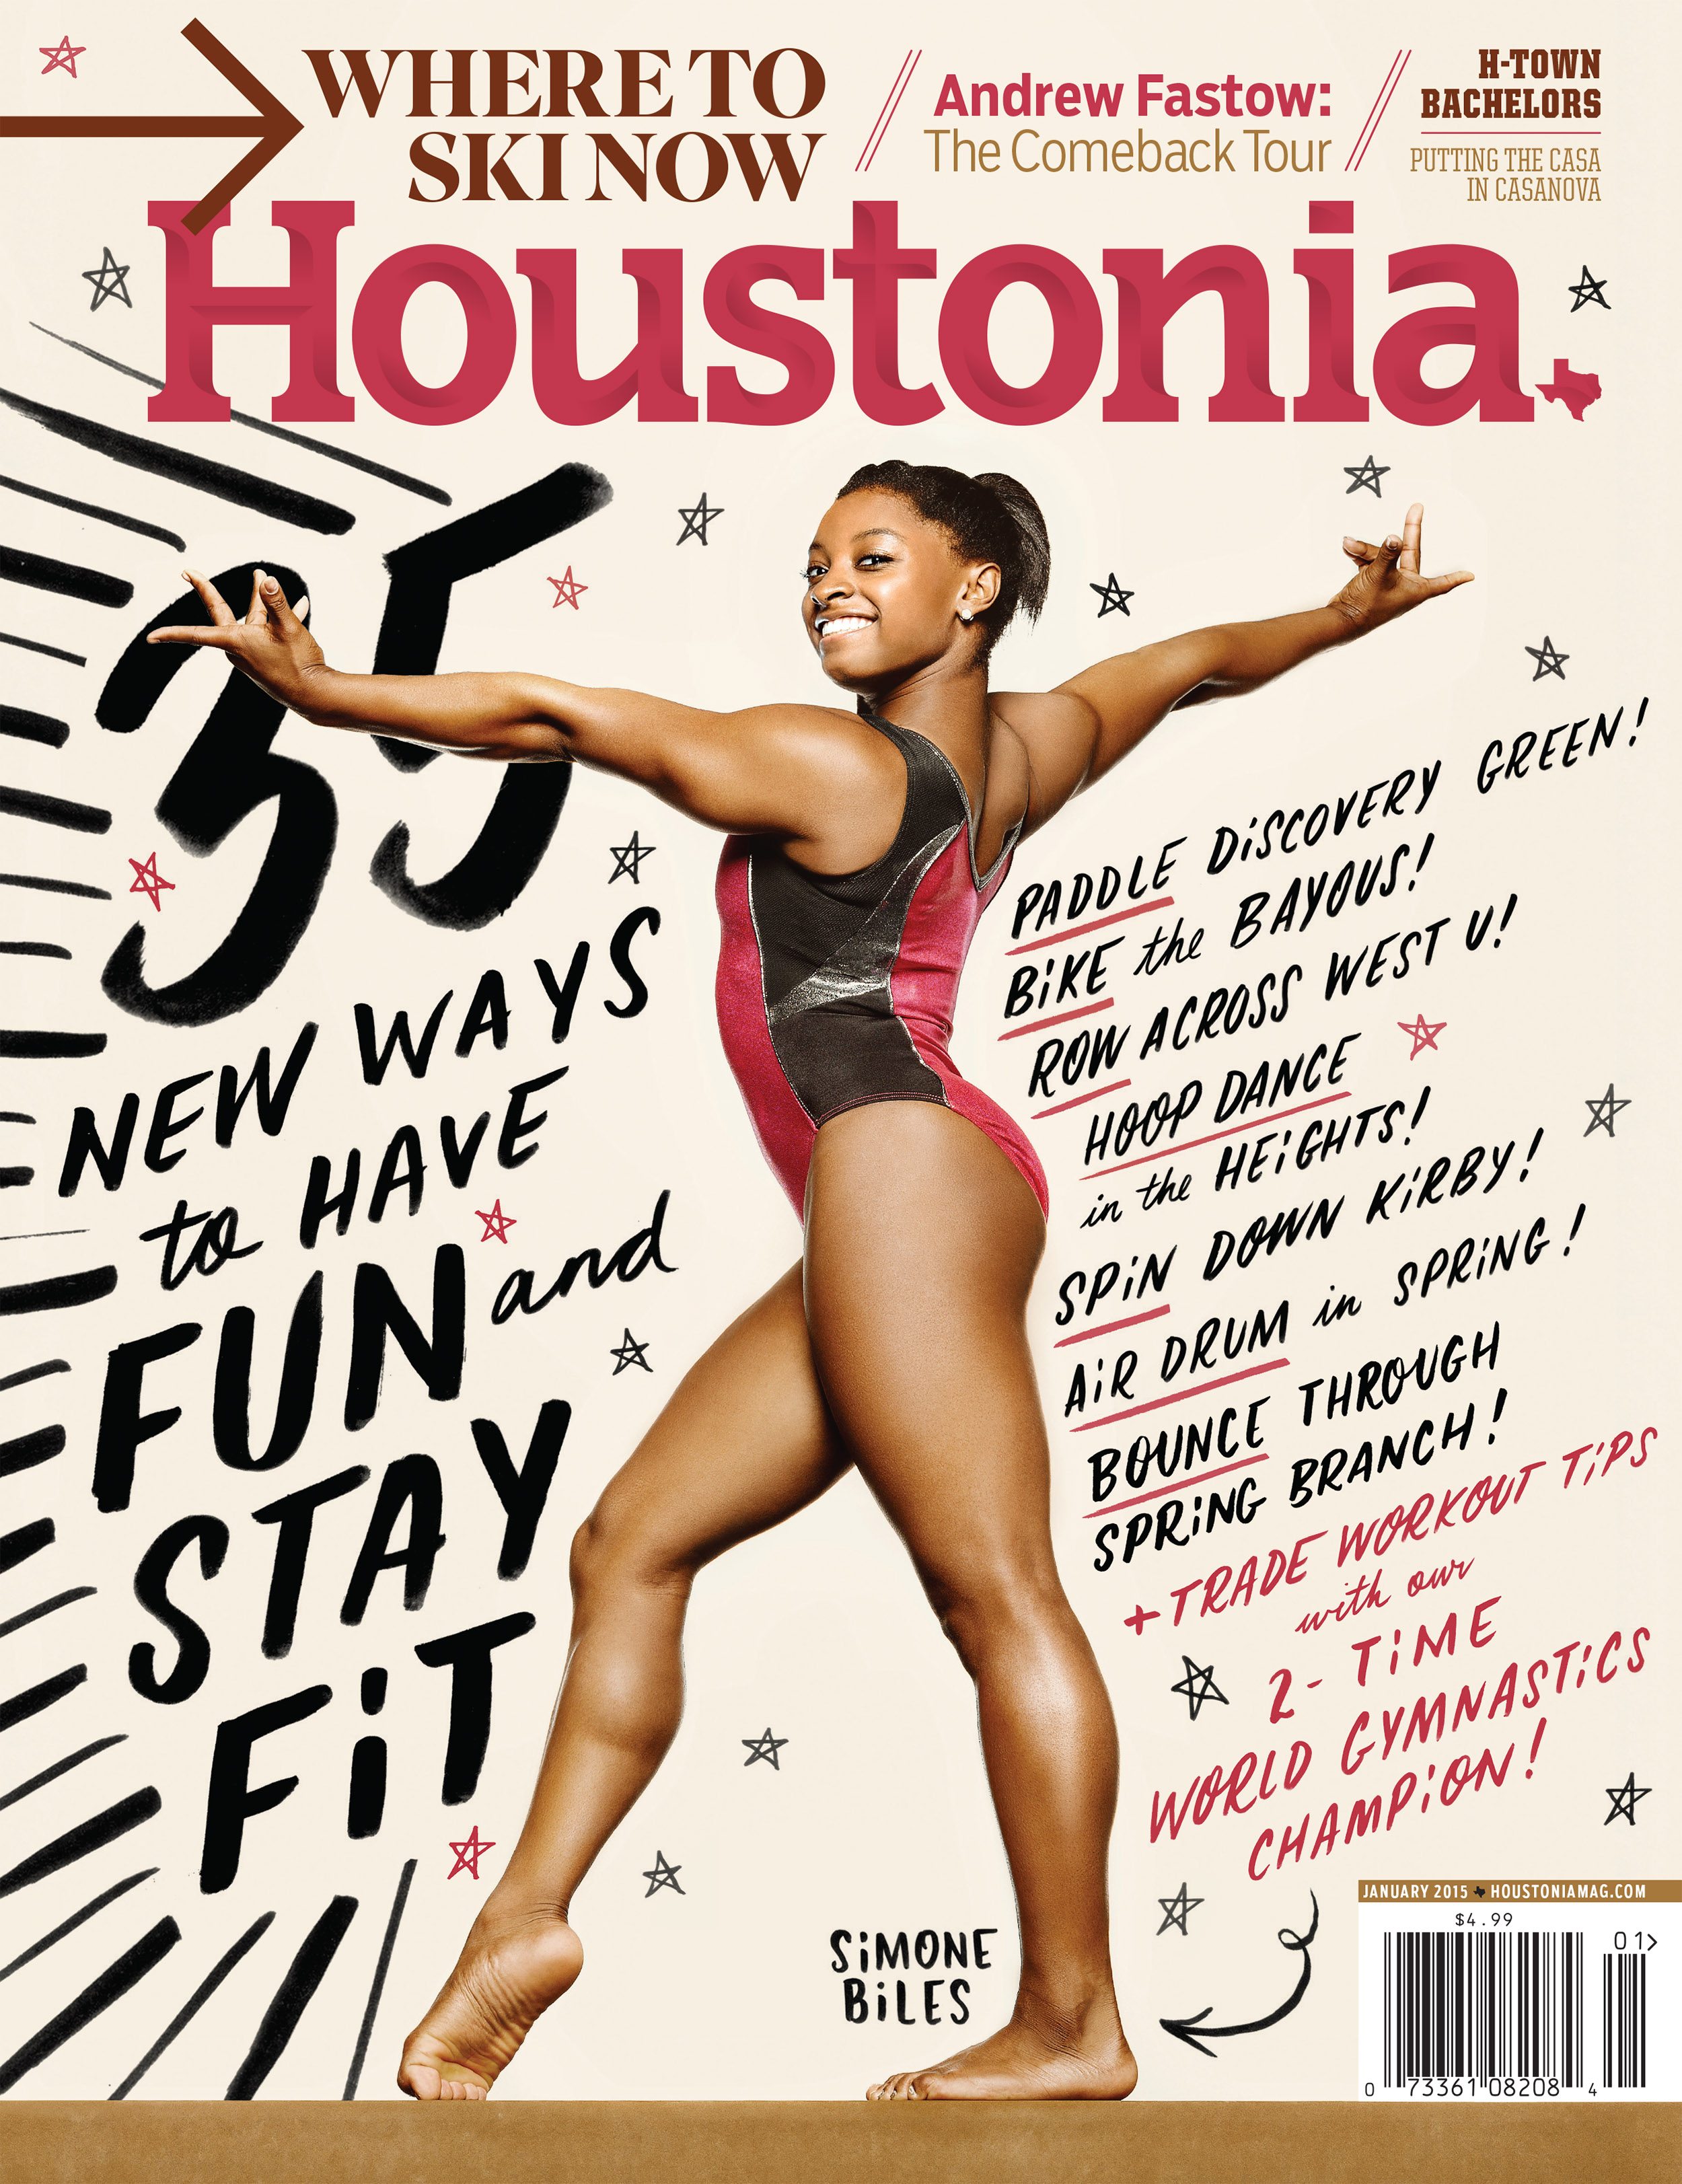 SIMONE BILES HOUSTONIA BY TODD SPOTH 1